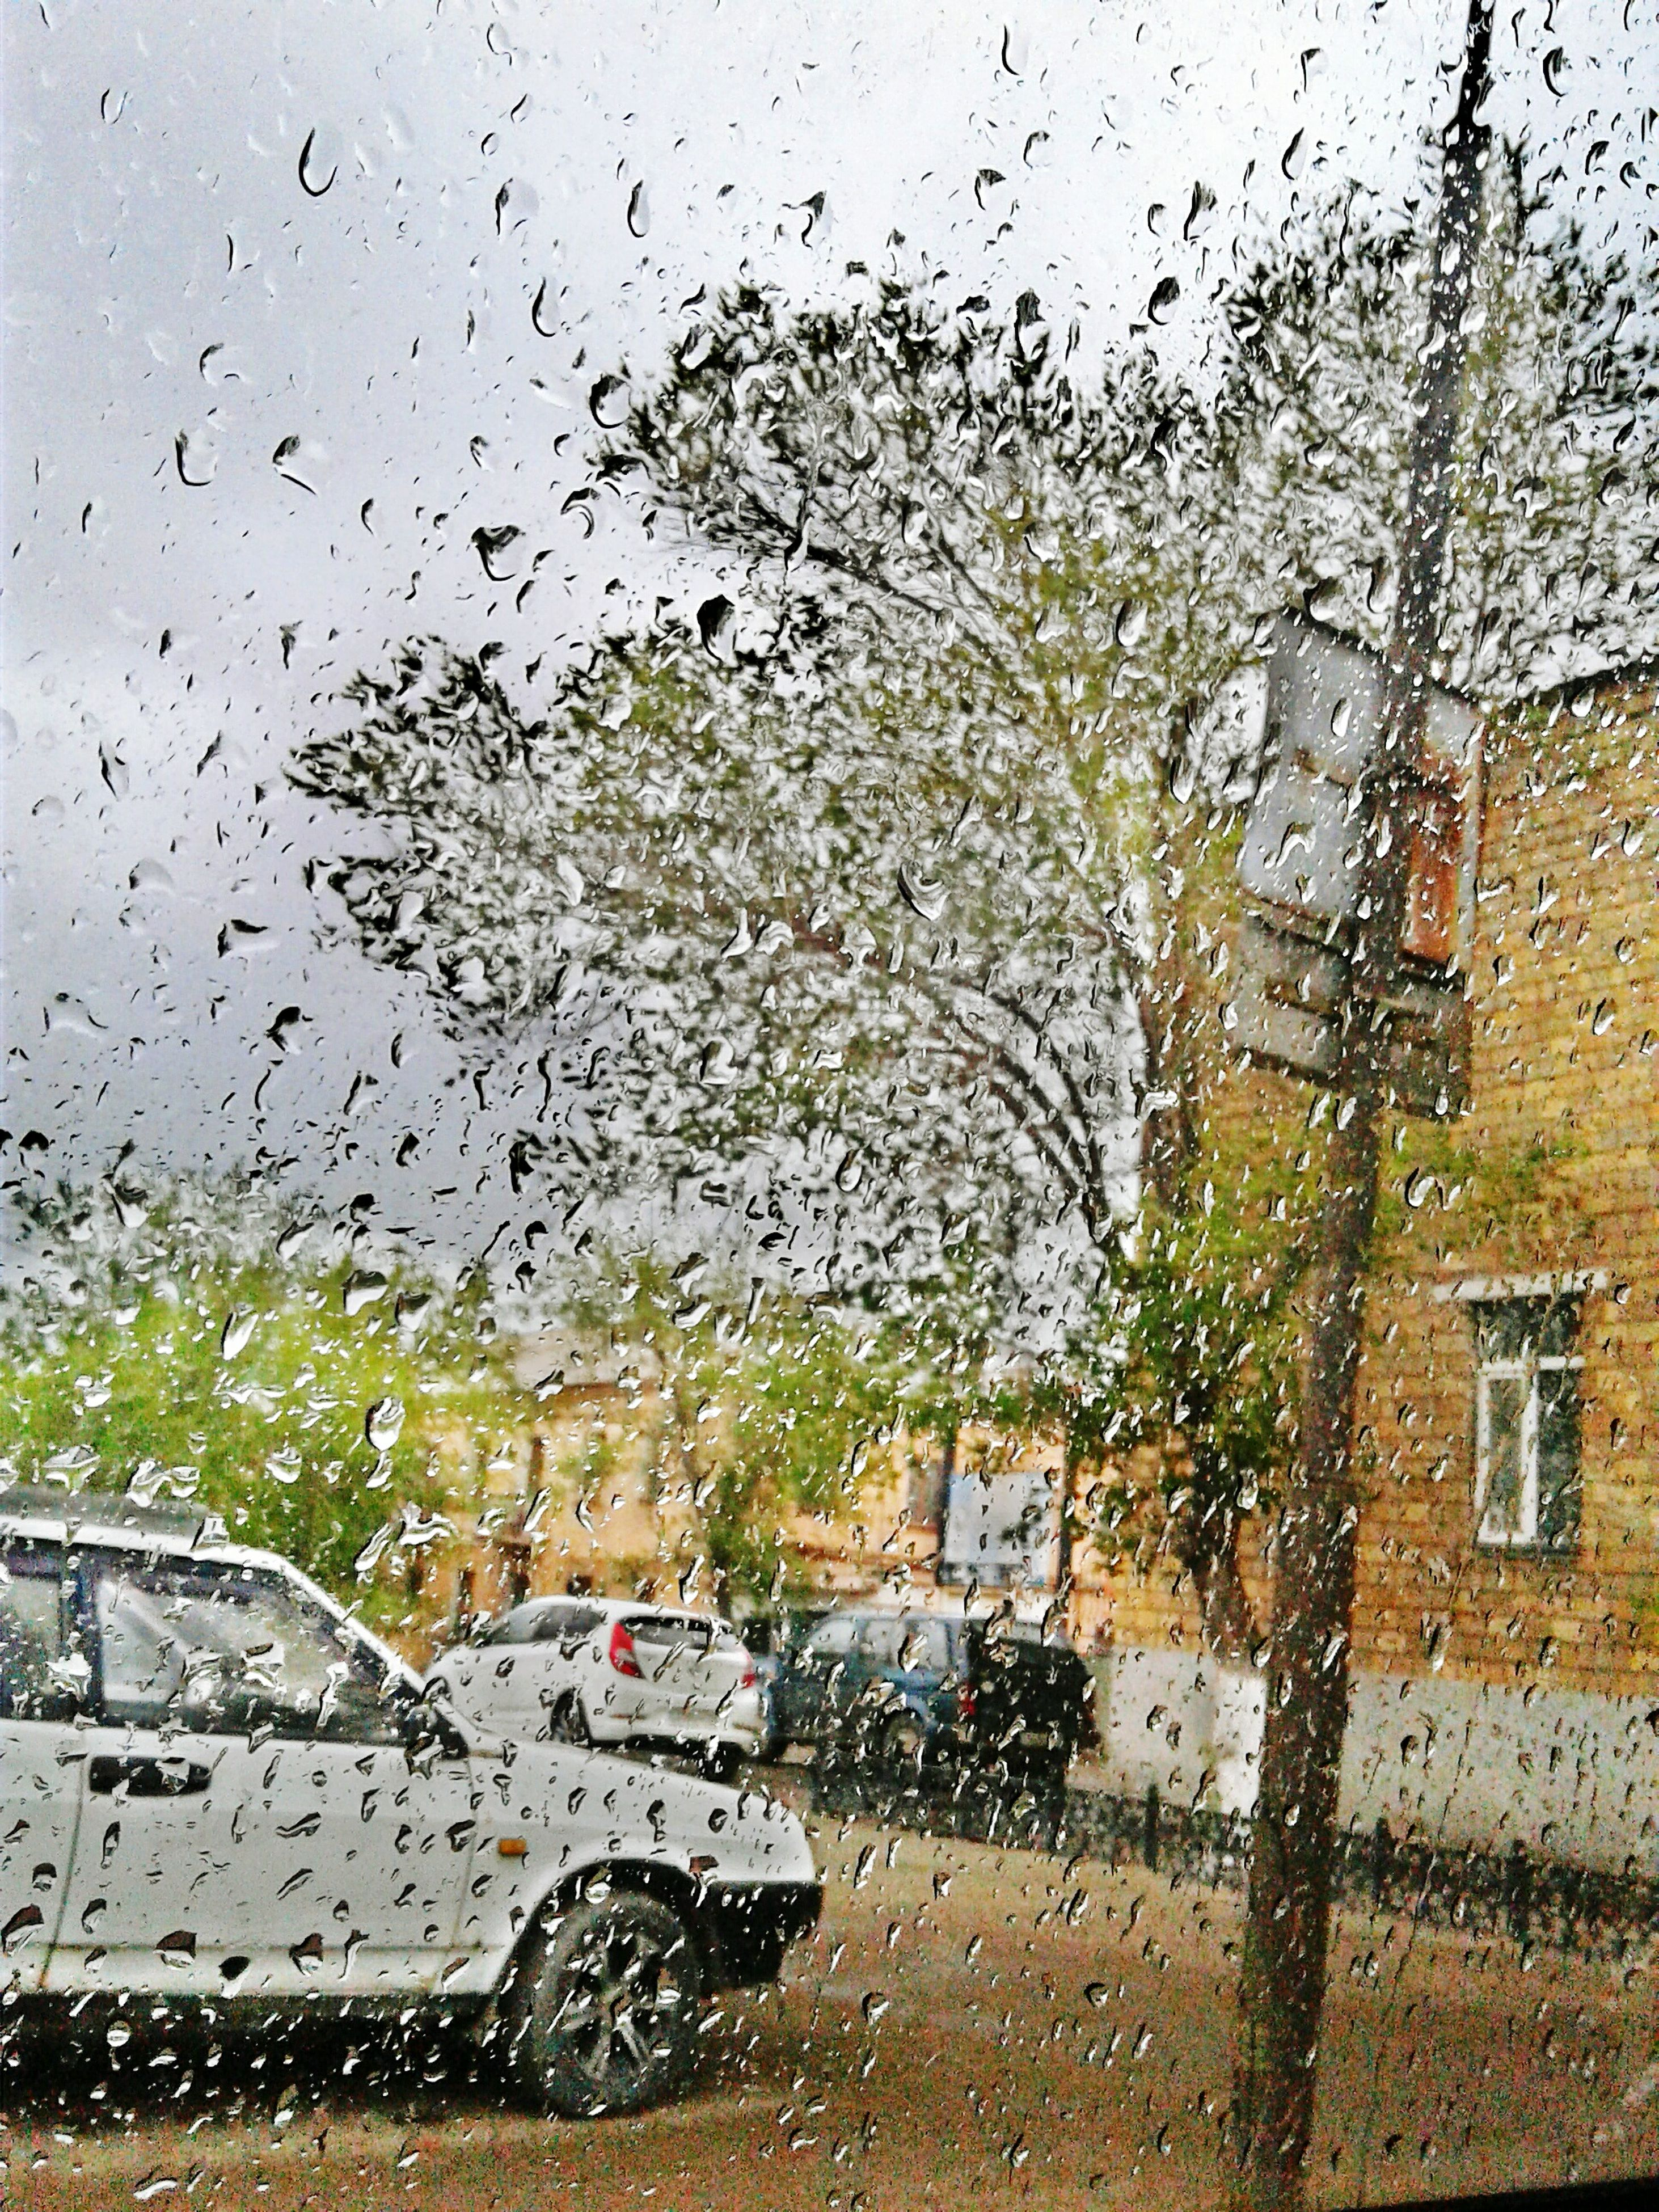 window, wet, drop, rain, transparent, car, glass - material, water, transportation, season, mode of transport, land vehicle, weather, raindrop, vehicle interior, indoors, tree, monsoon, windshield, sky